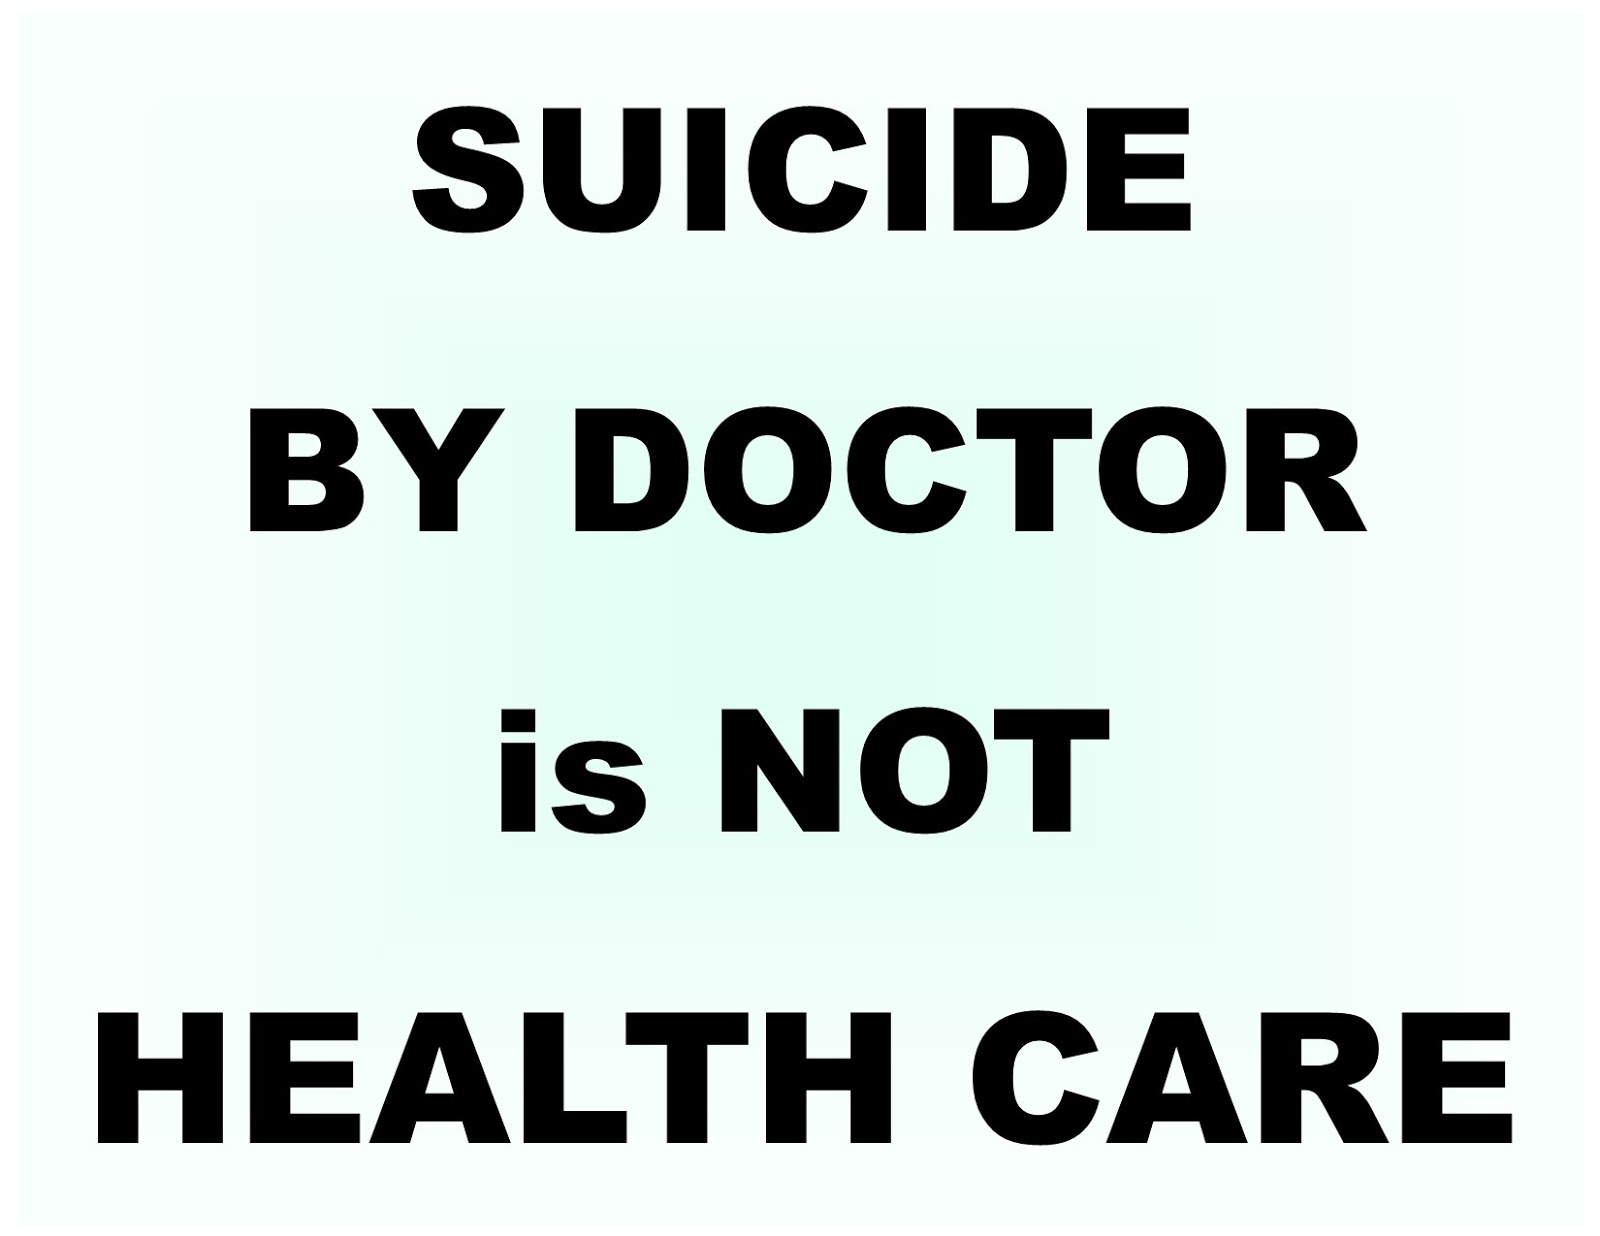 pas vs euthanasia Euthanasia & assisted suicide - should euthanasia or physician-assisted suicide be legal tablets vs textbooks - should tablets replace textbooks in k-12 schools.